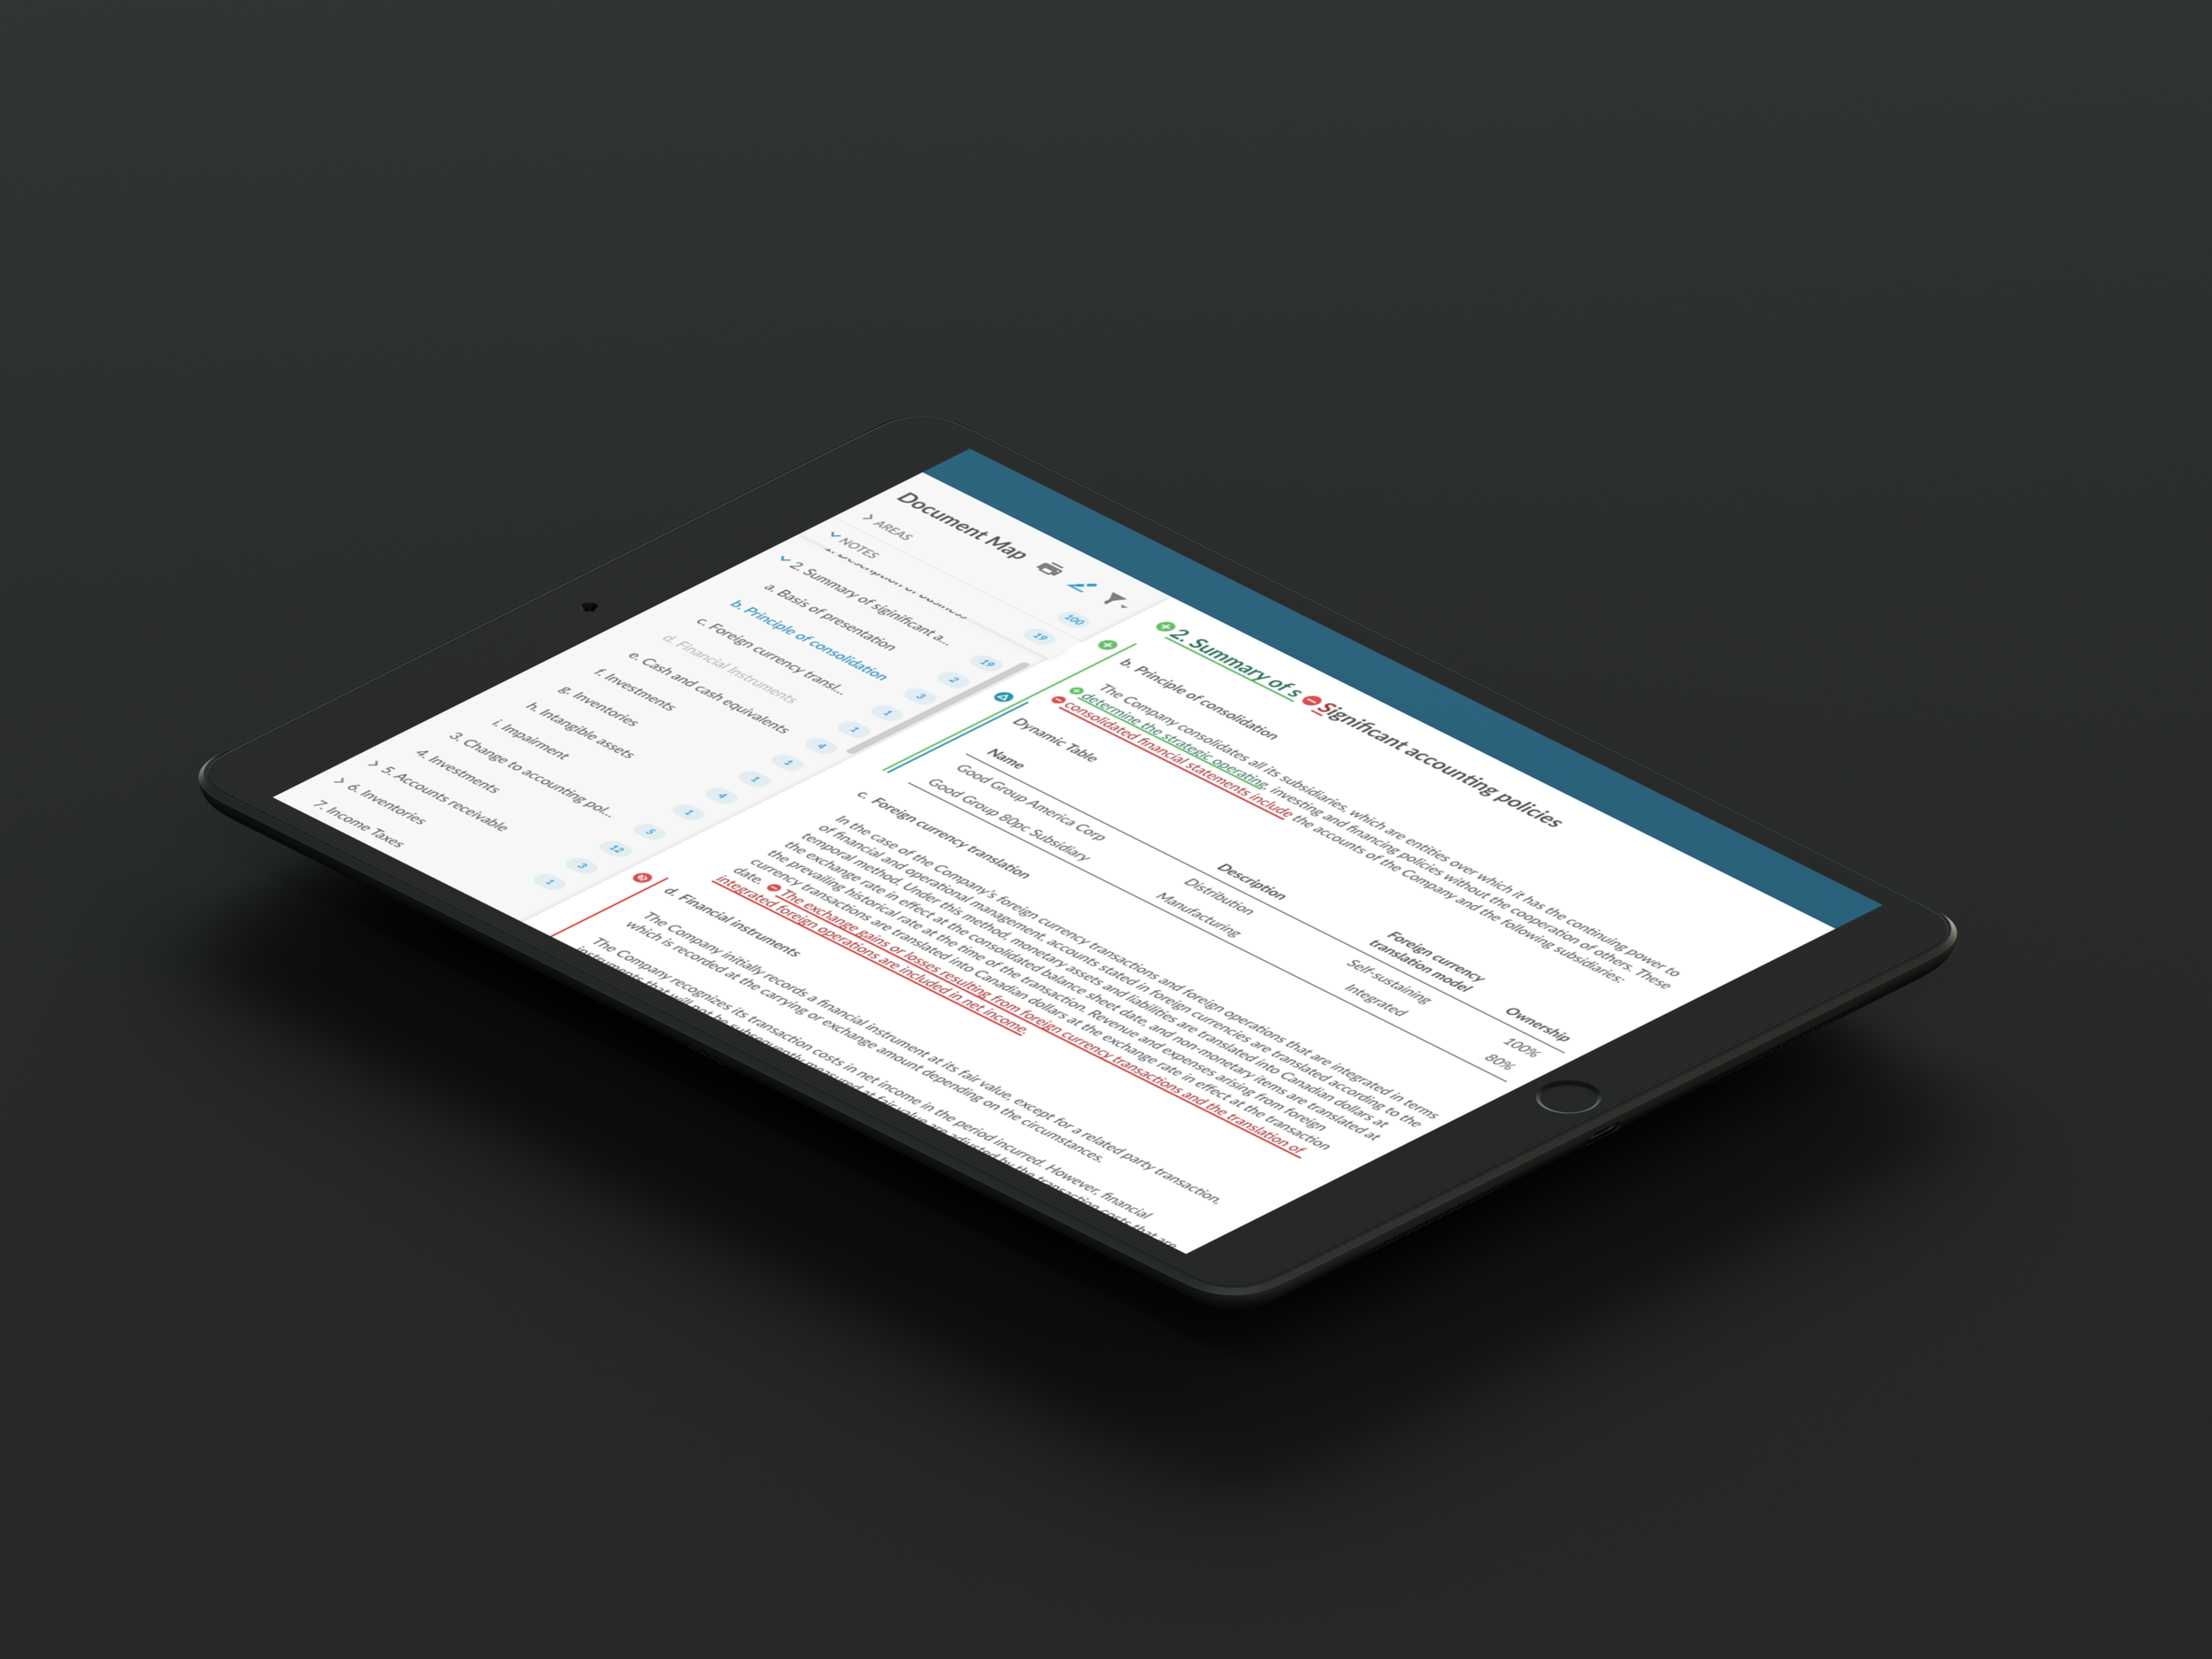 Review Tools - Eliminating the document review process